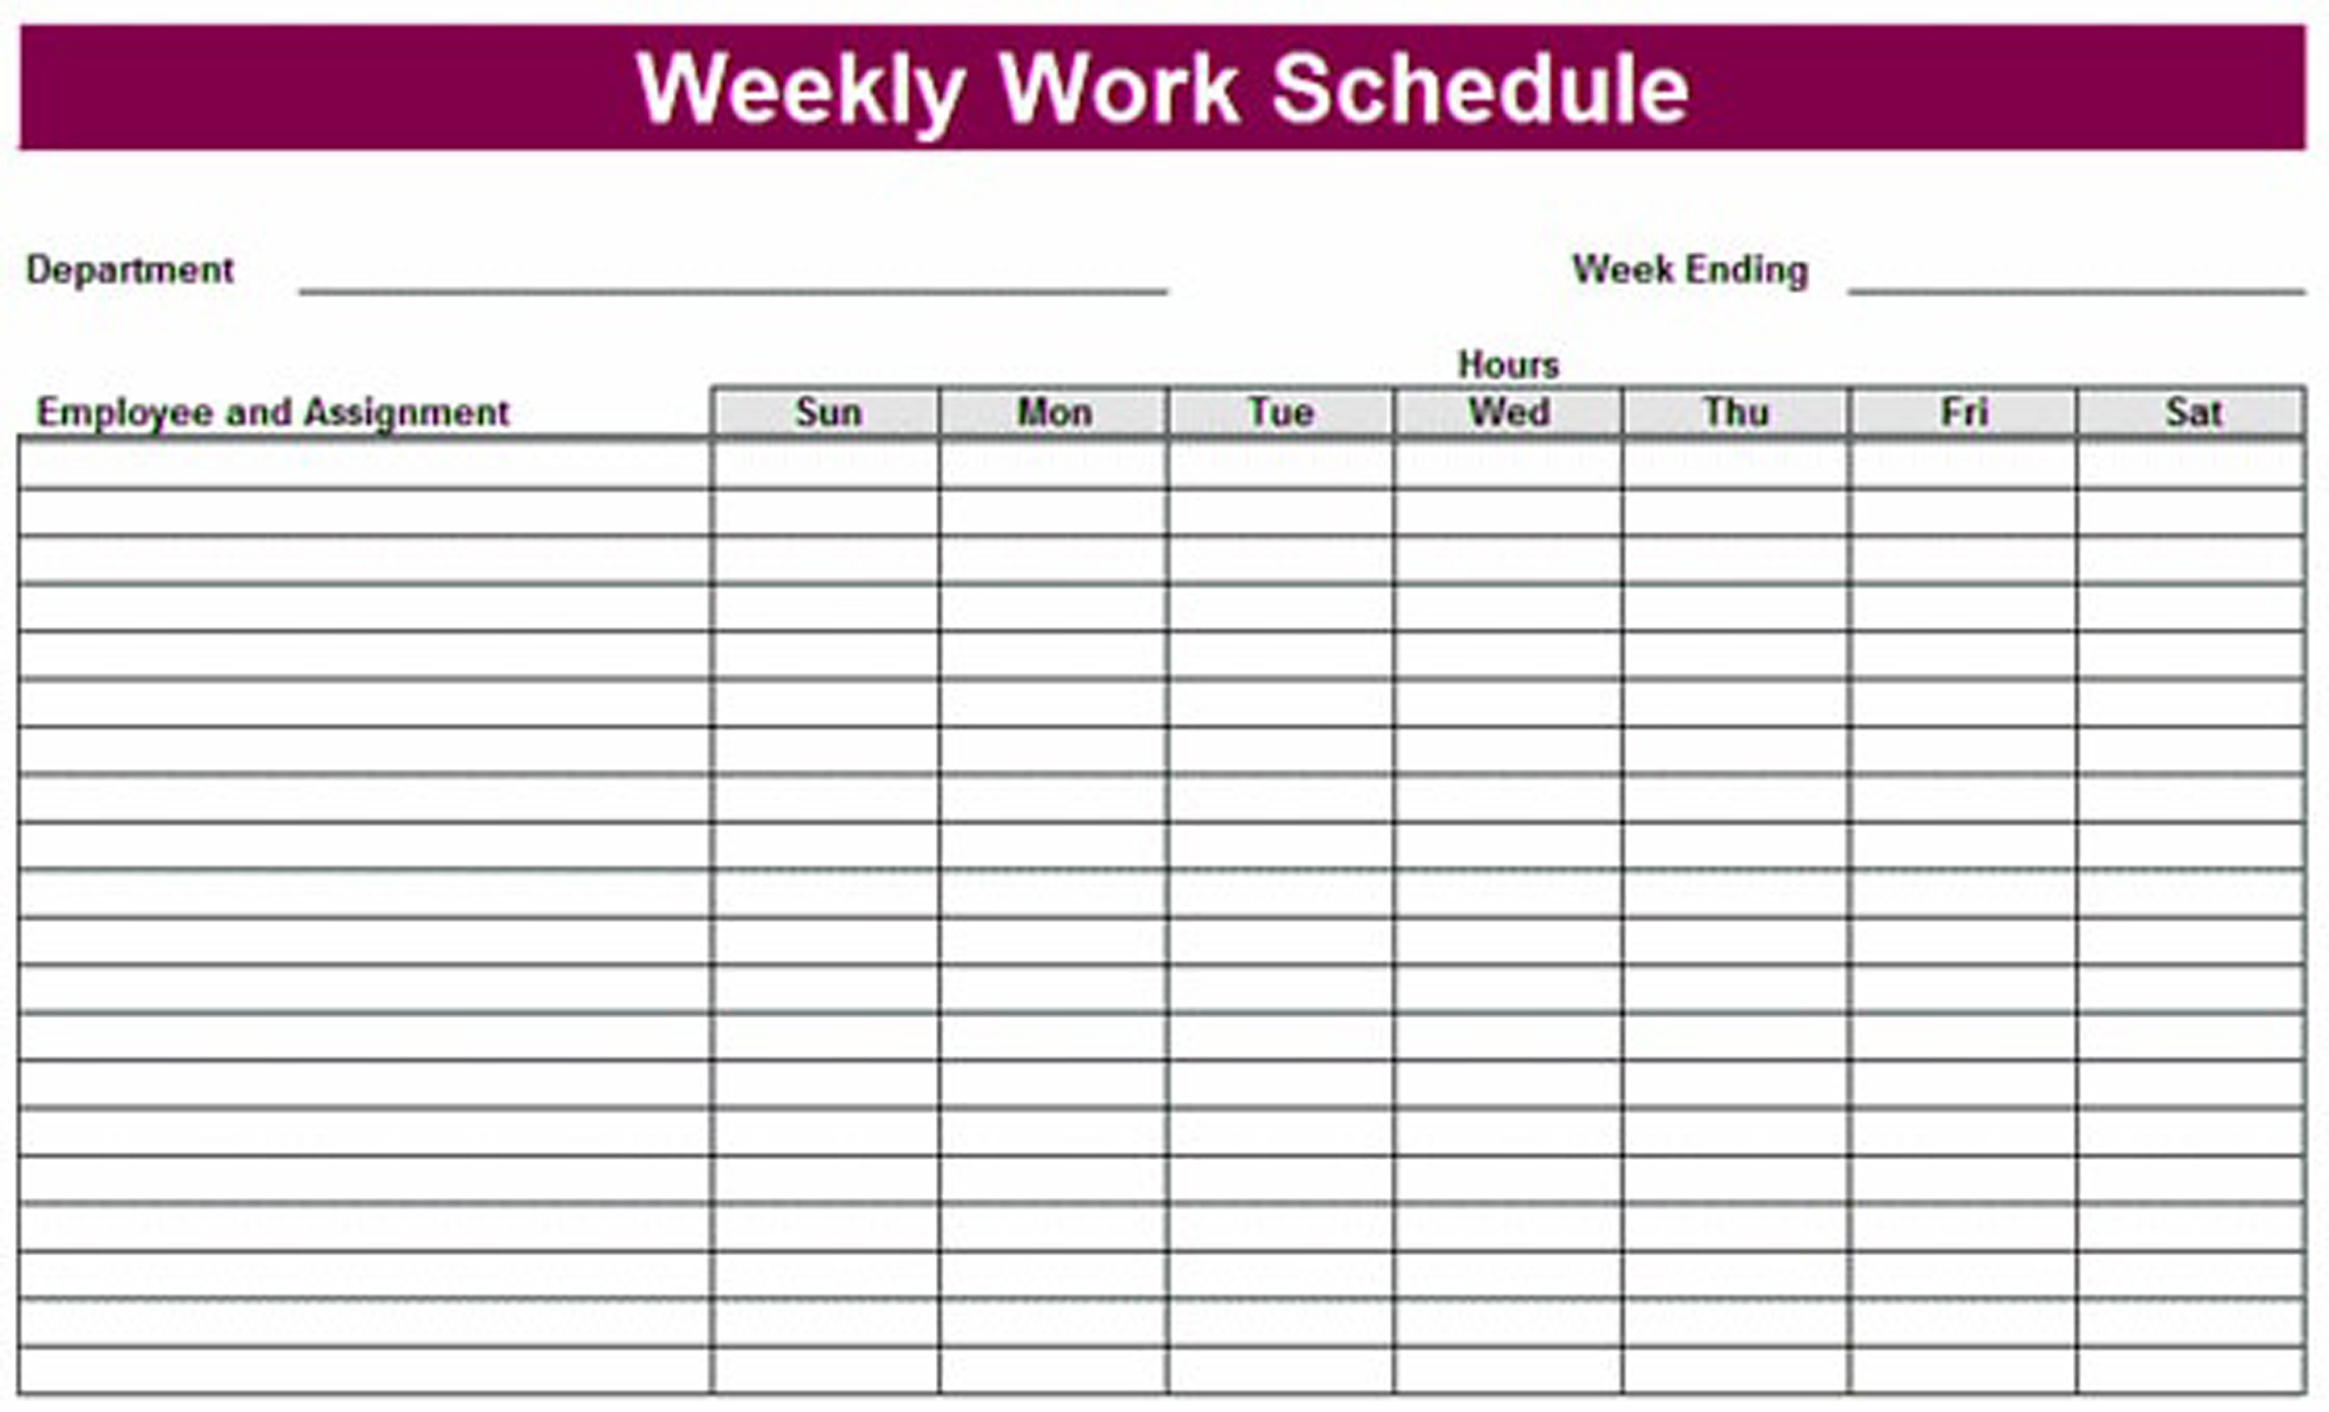 Free Employee Work Schedule Late Printable Weekly Download Them Or - Free Printable Monthly Work Schedule Template